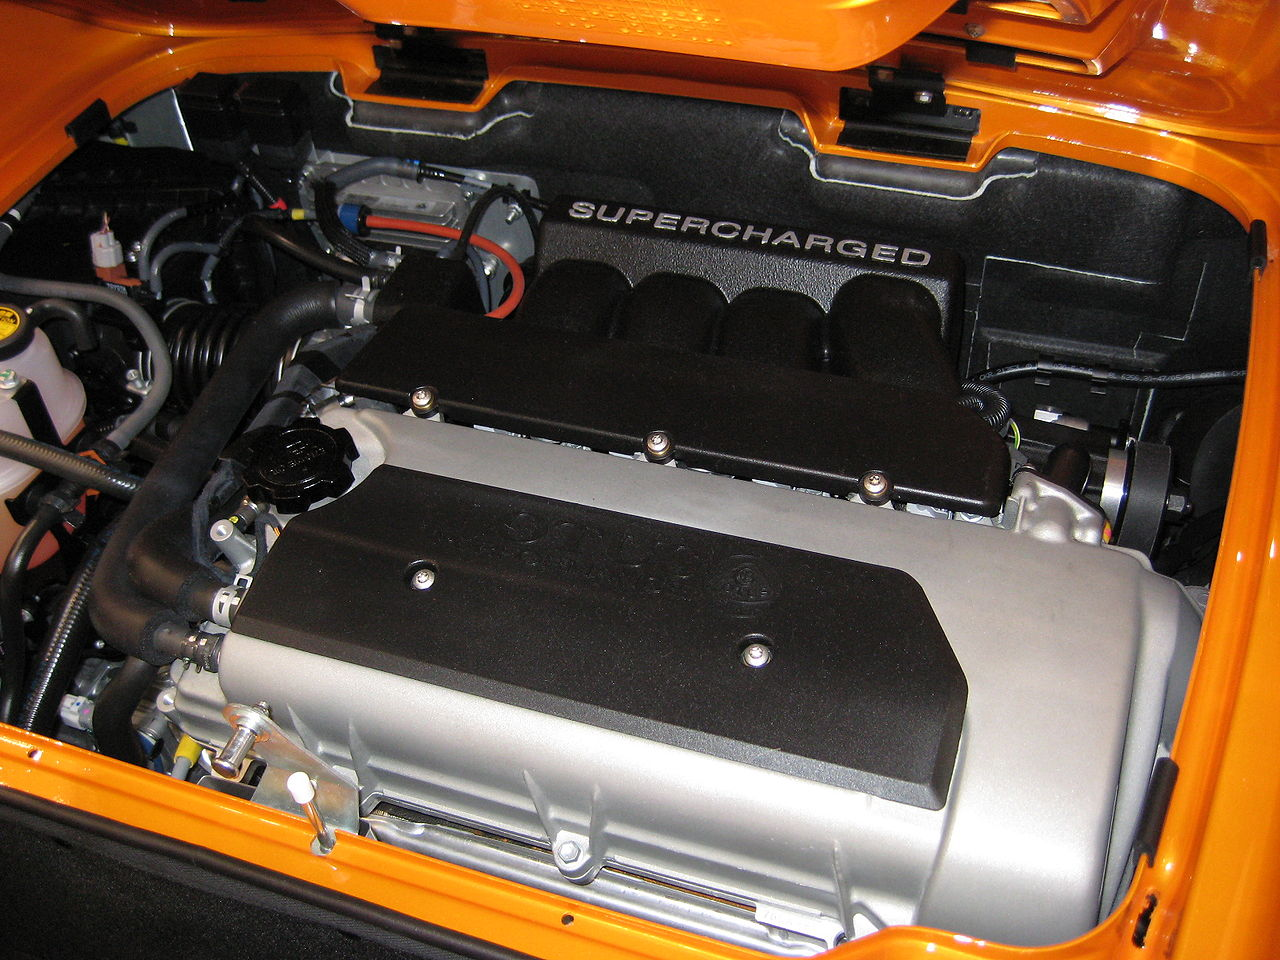 Filelotus Supercharged Engine Wikimedia Commons 2007 Toyota Corolla Fuel Filter Location